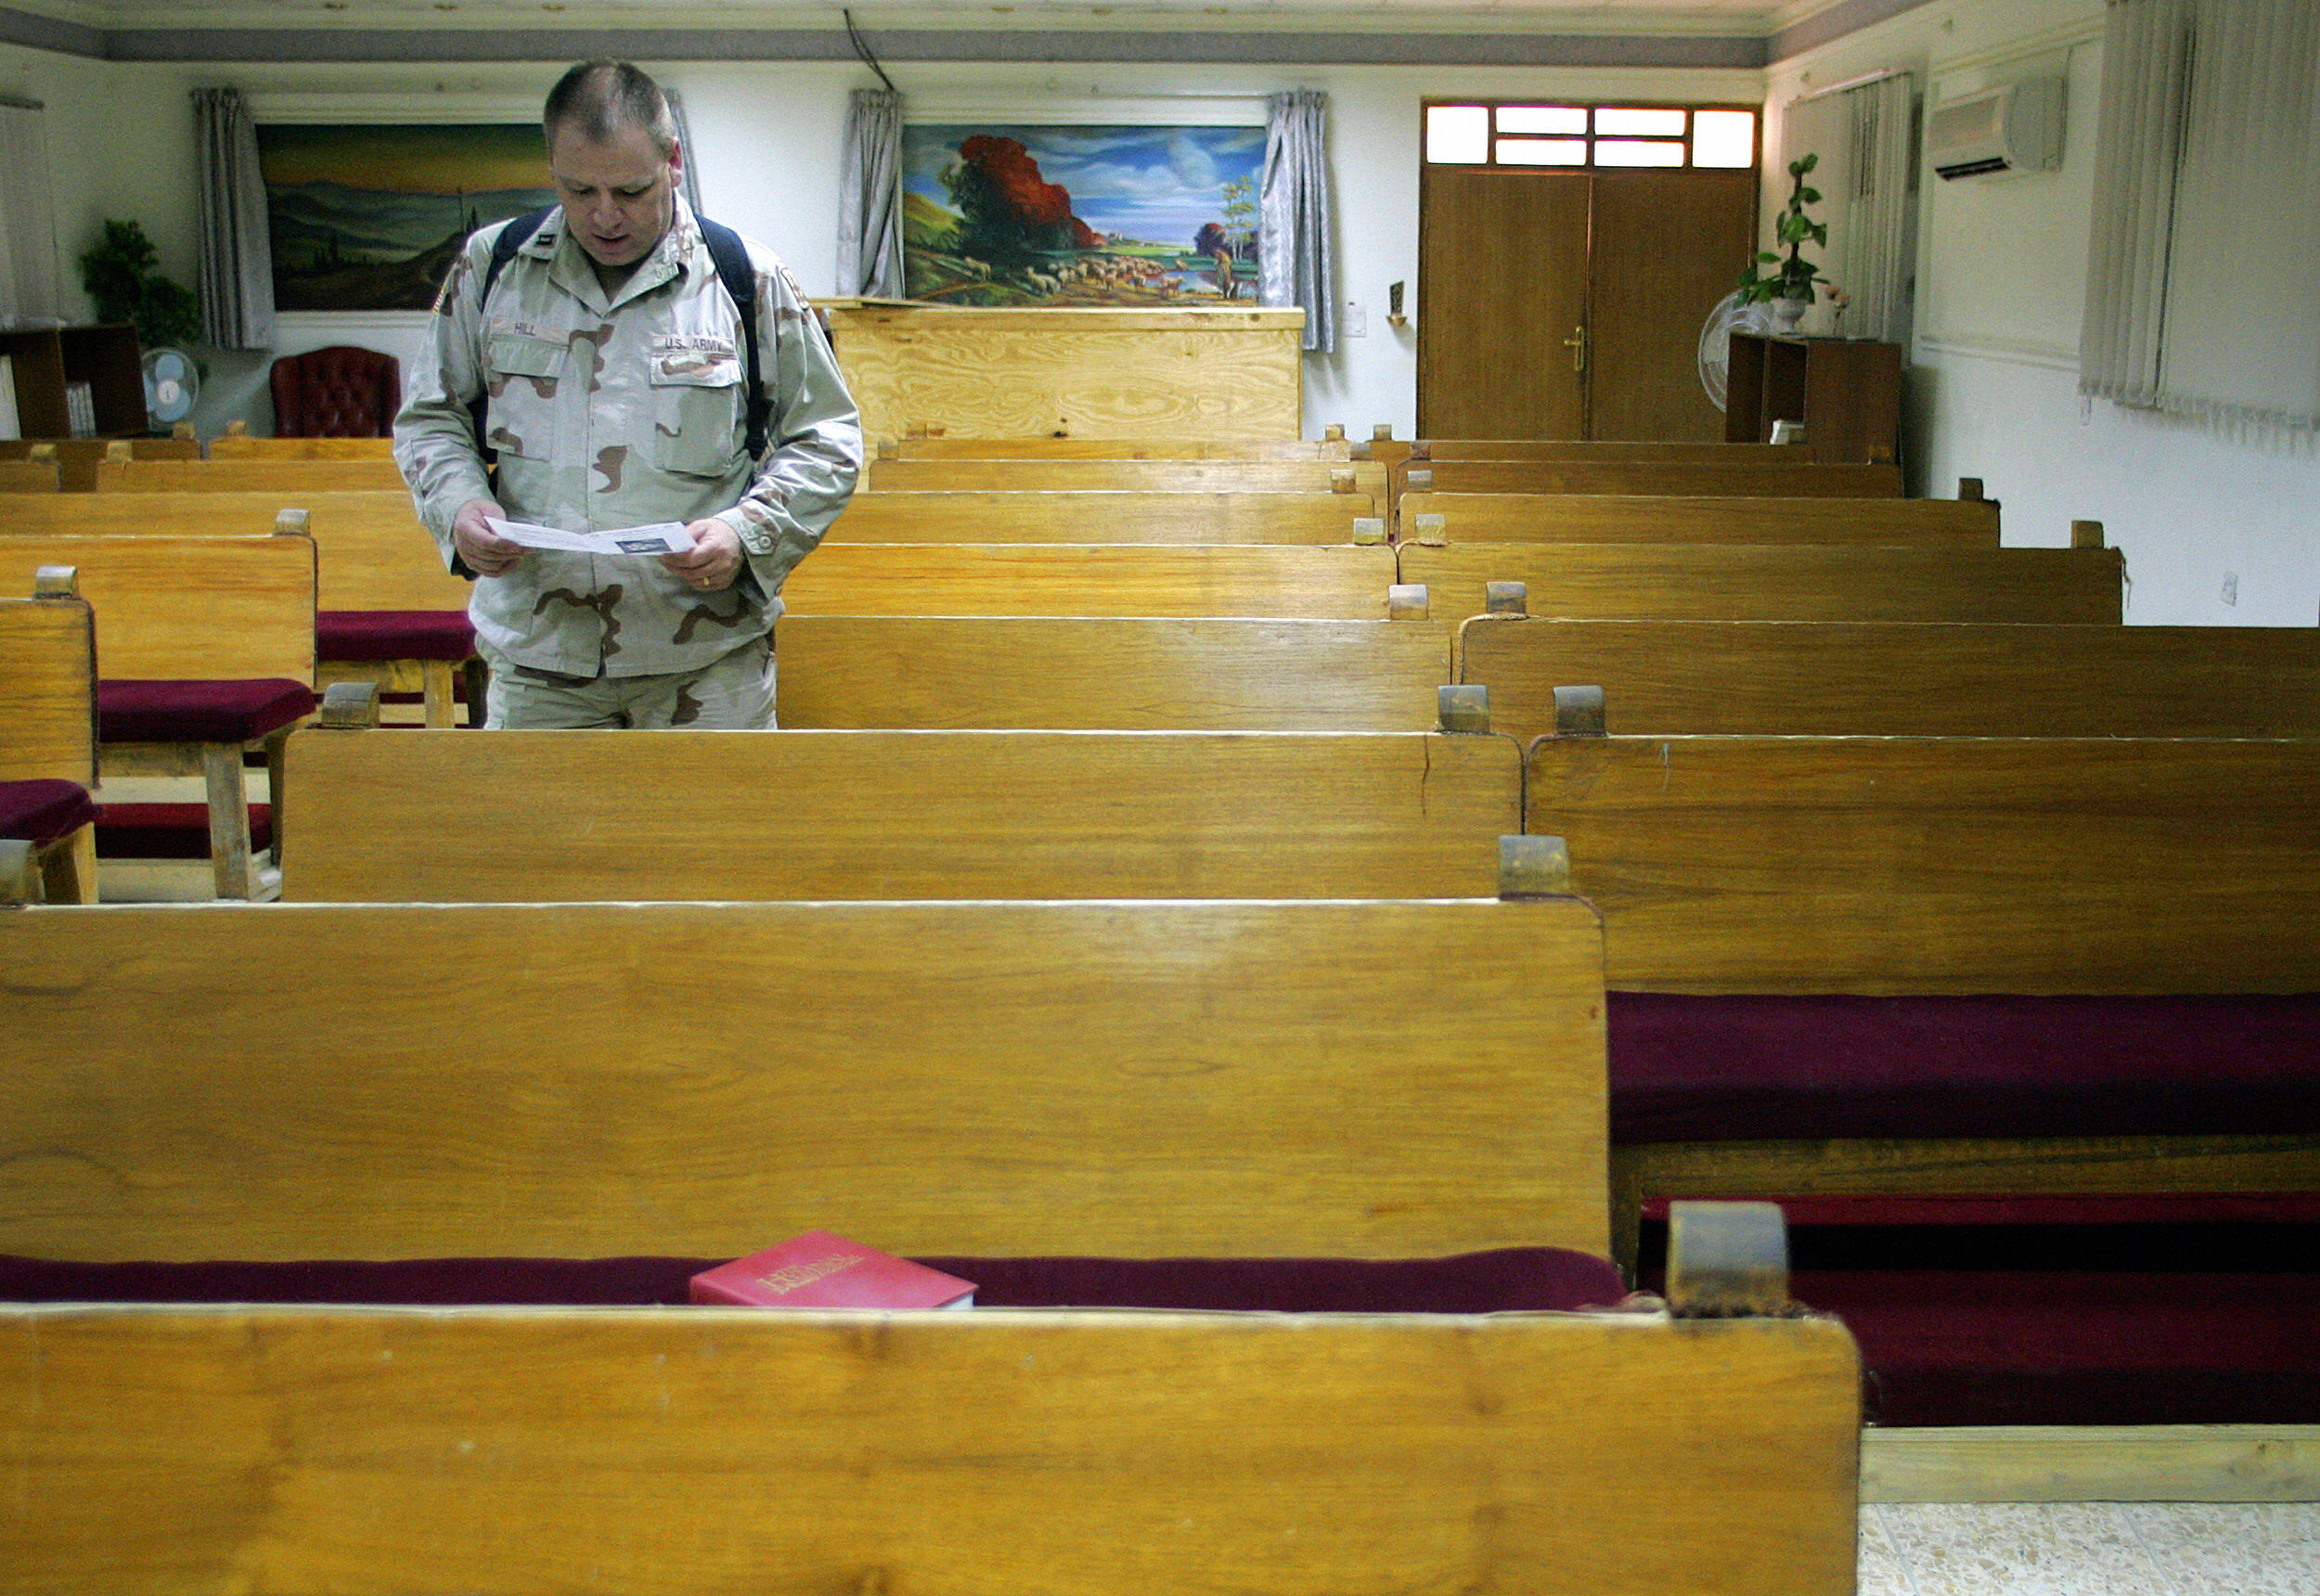 A US soldier of the 3rd Infantry Division prays during a weekly worship service at a chapel in Camp Falcon, southern Baghdad, 20 August 2005. (Photo credit should read LIU JIN/AFP via Getty Images)